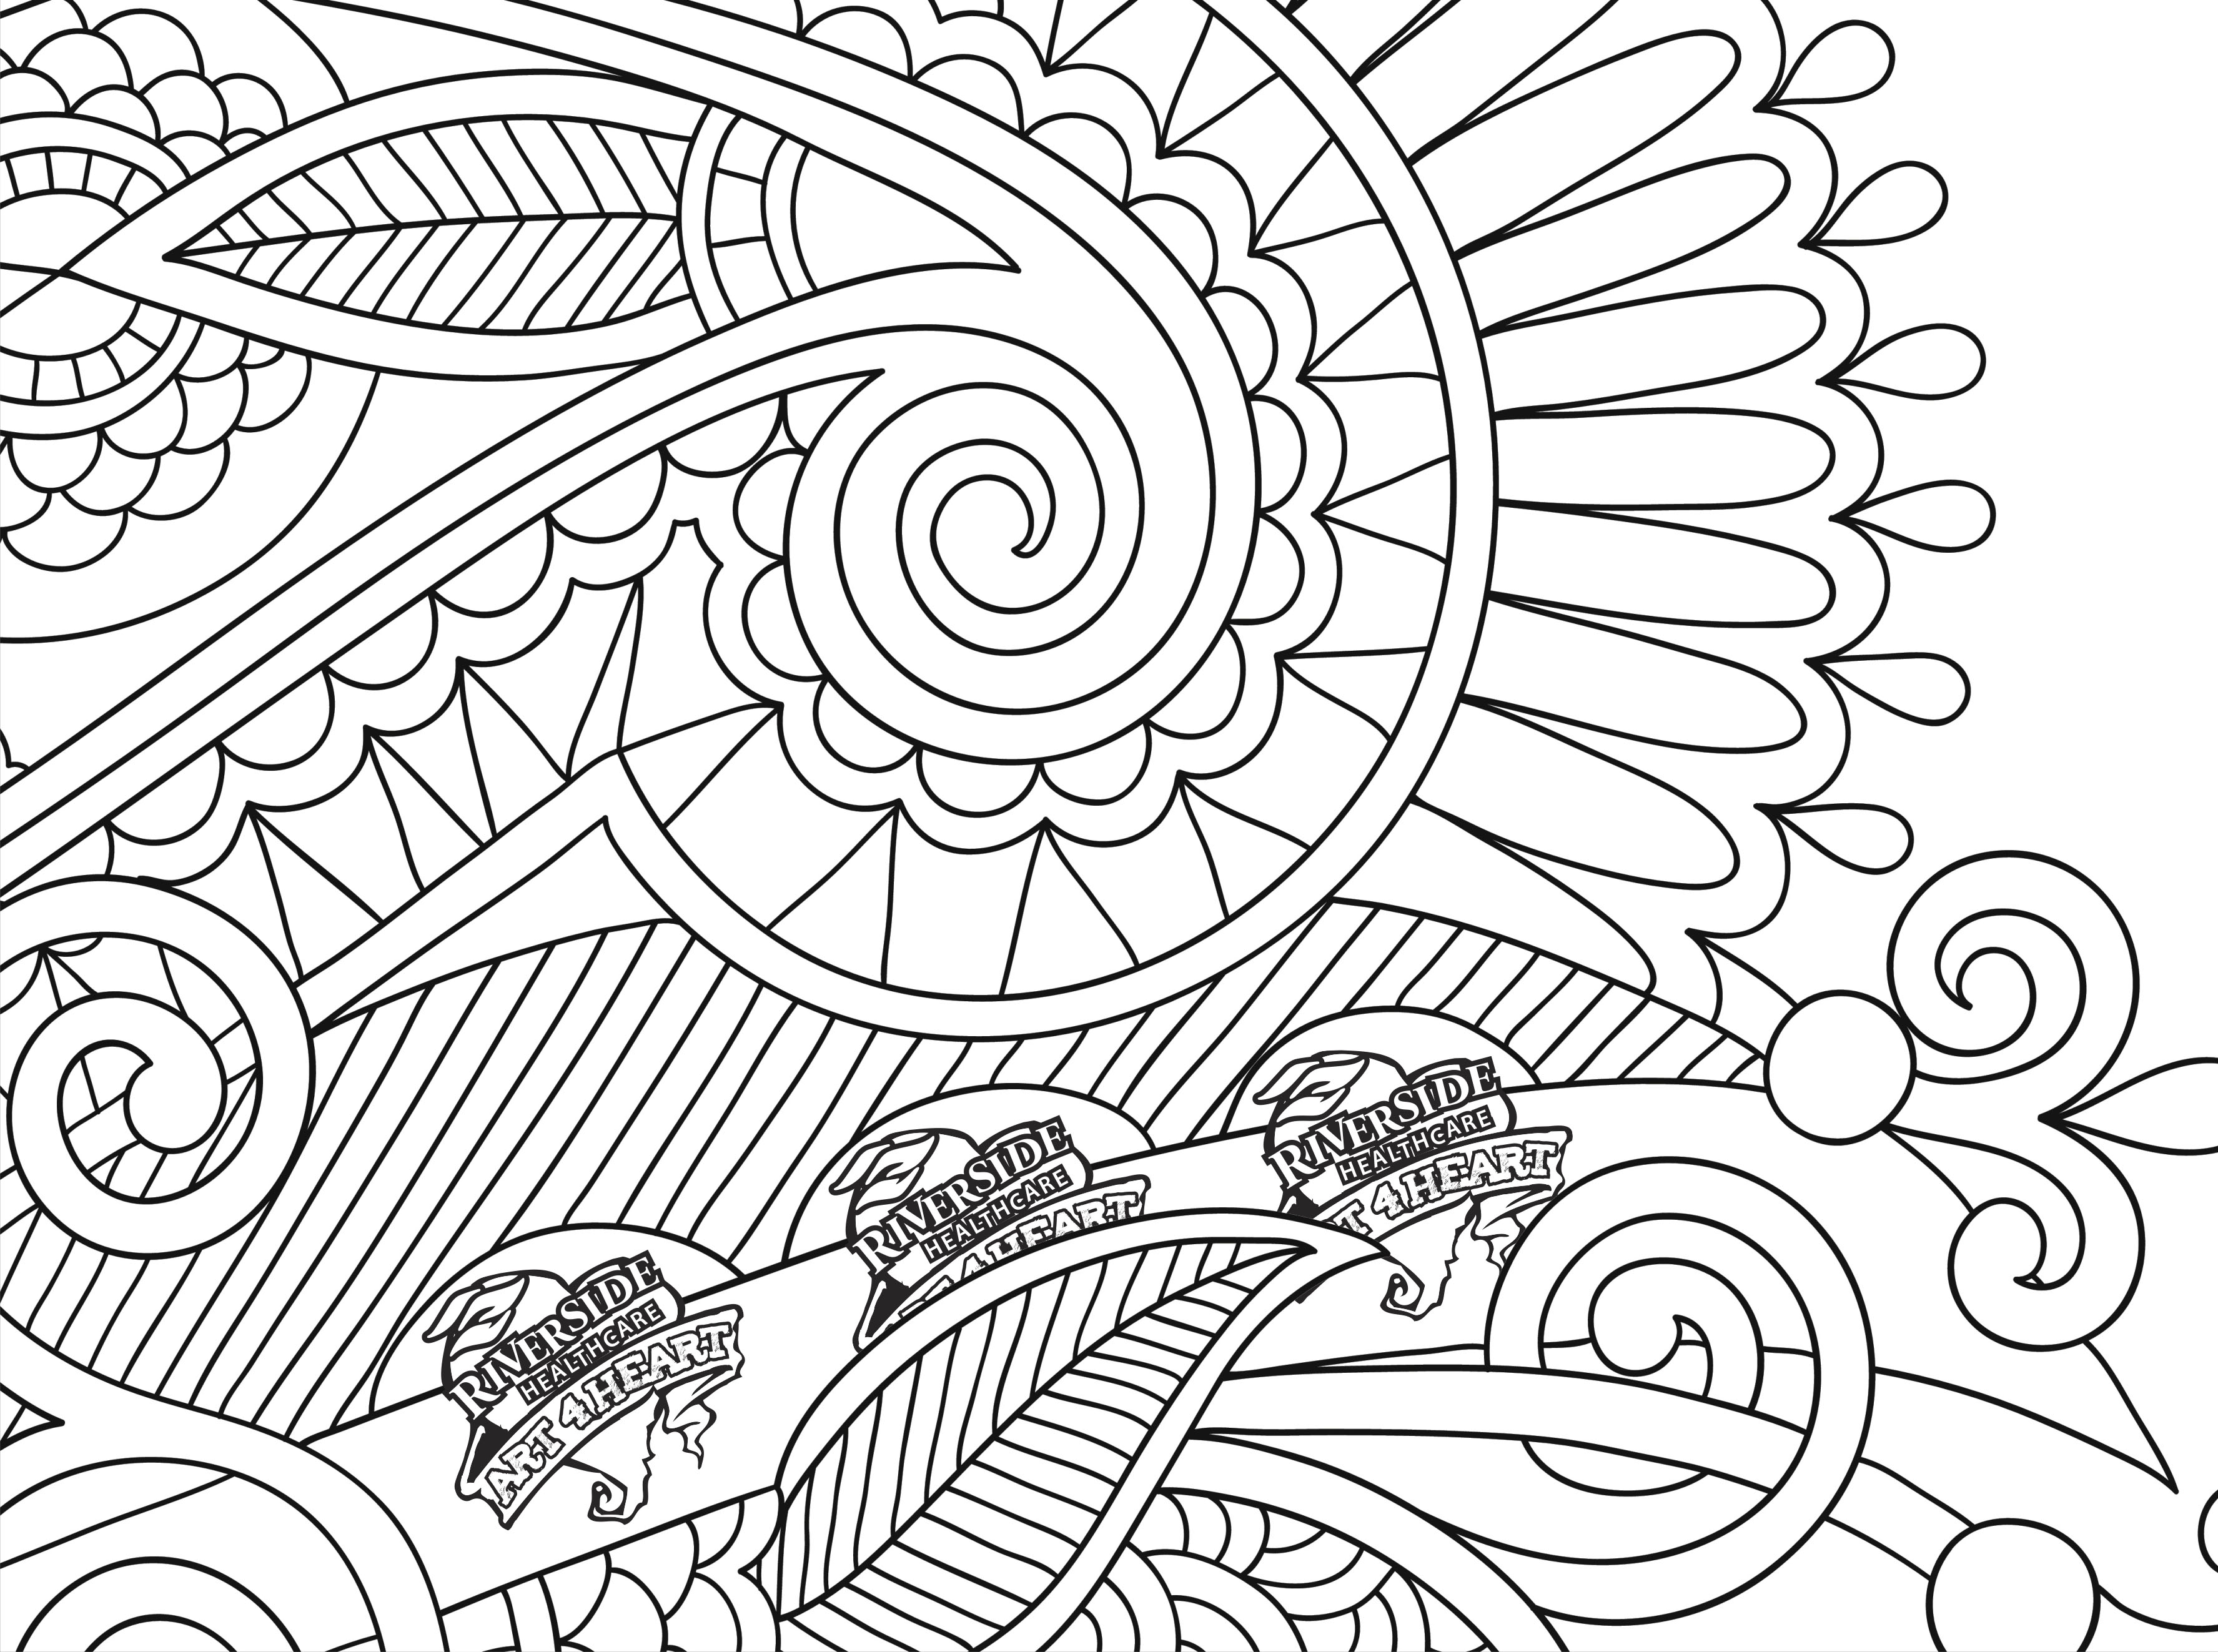 coloring templates for adults detailed coloring pages for adults free printable templates adults for coloring